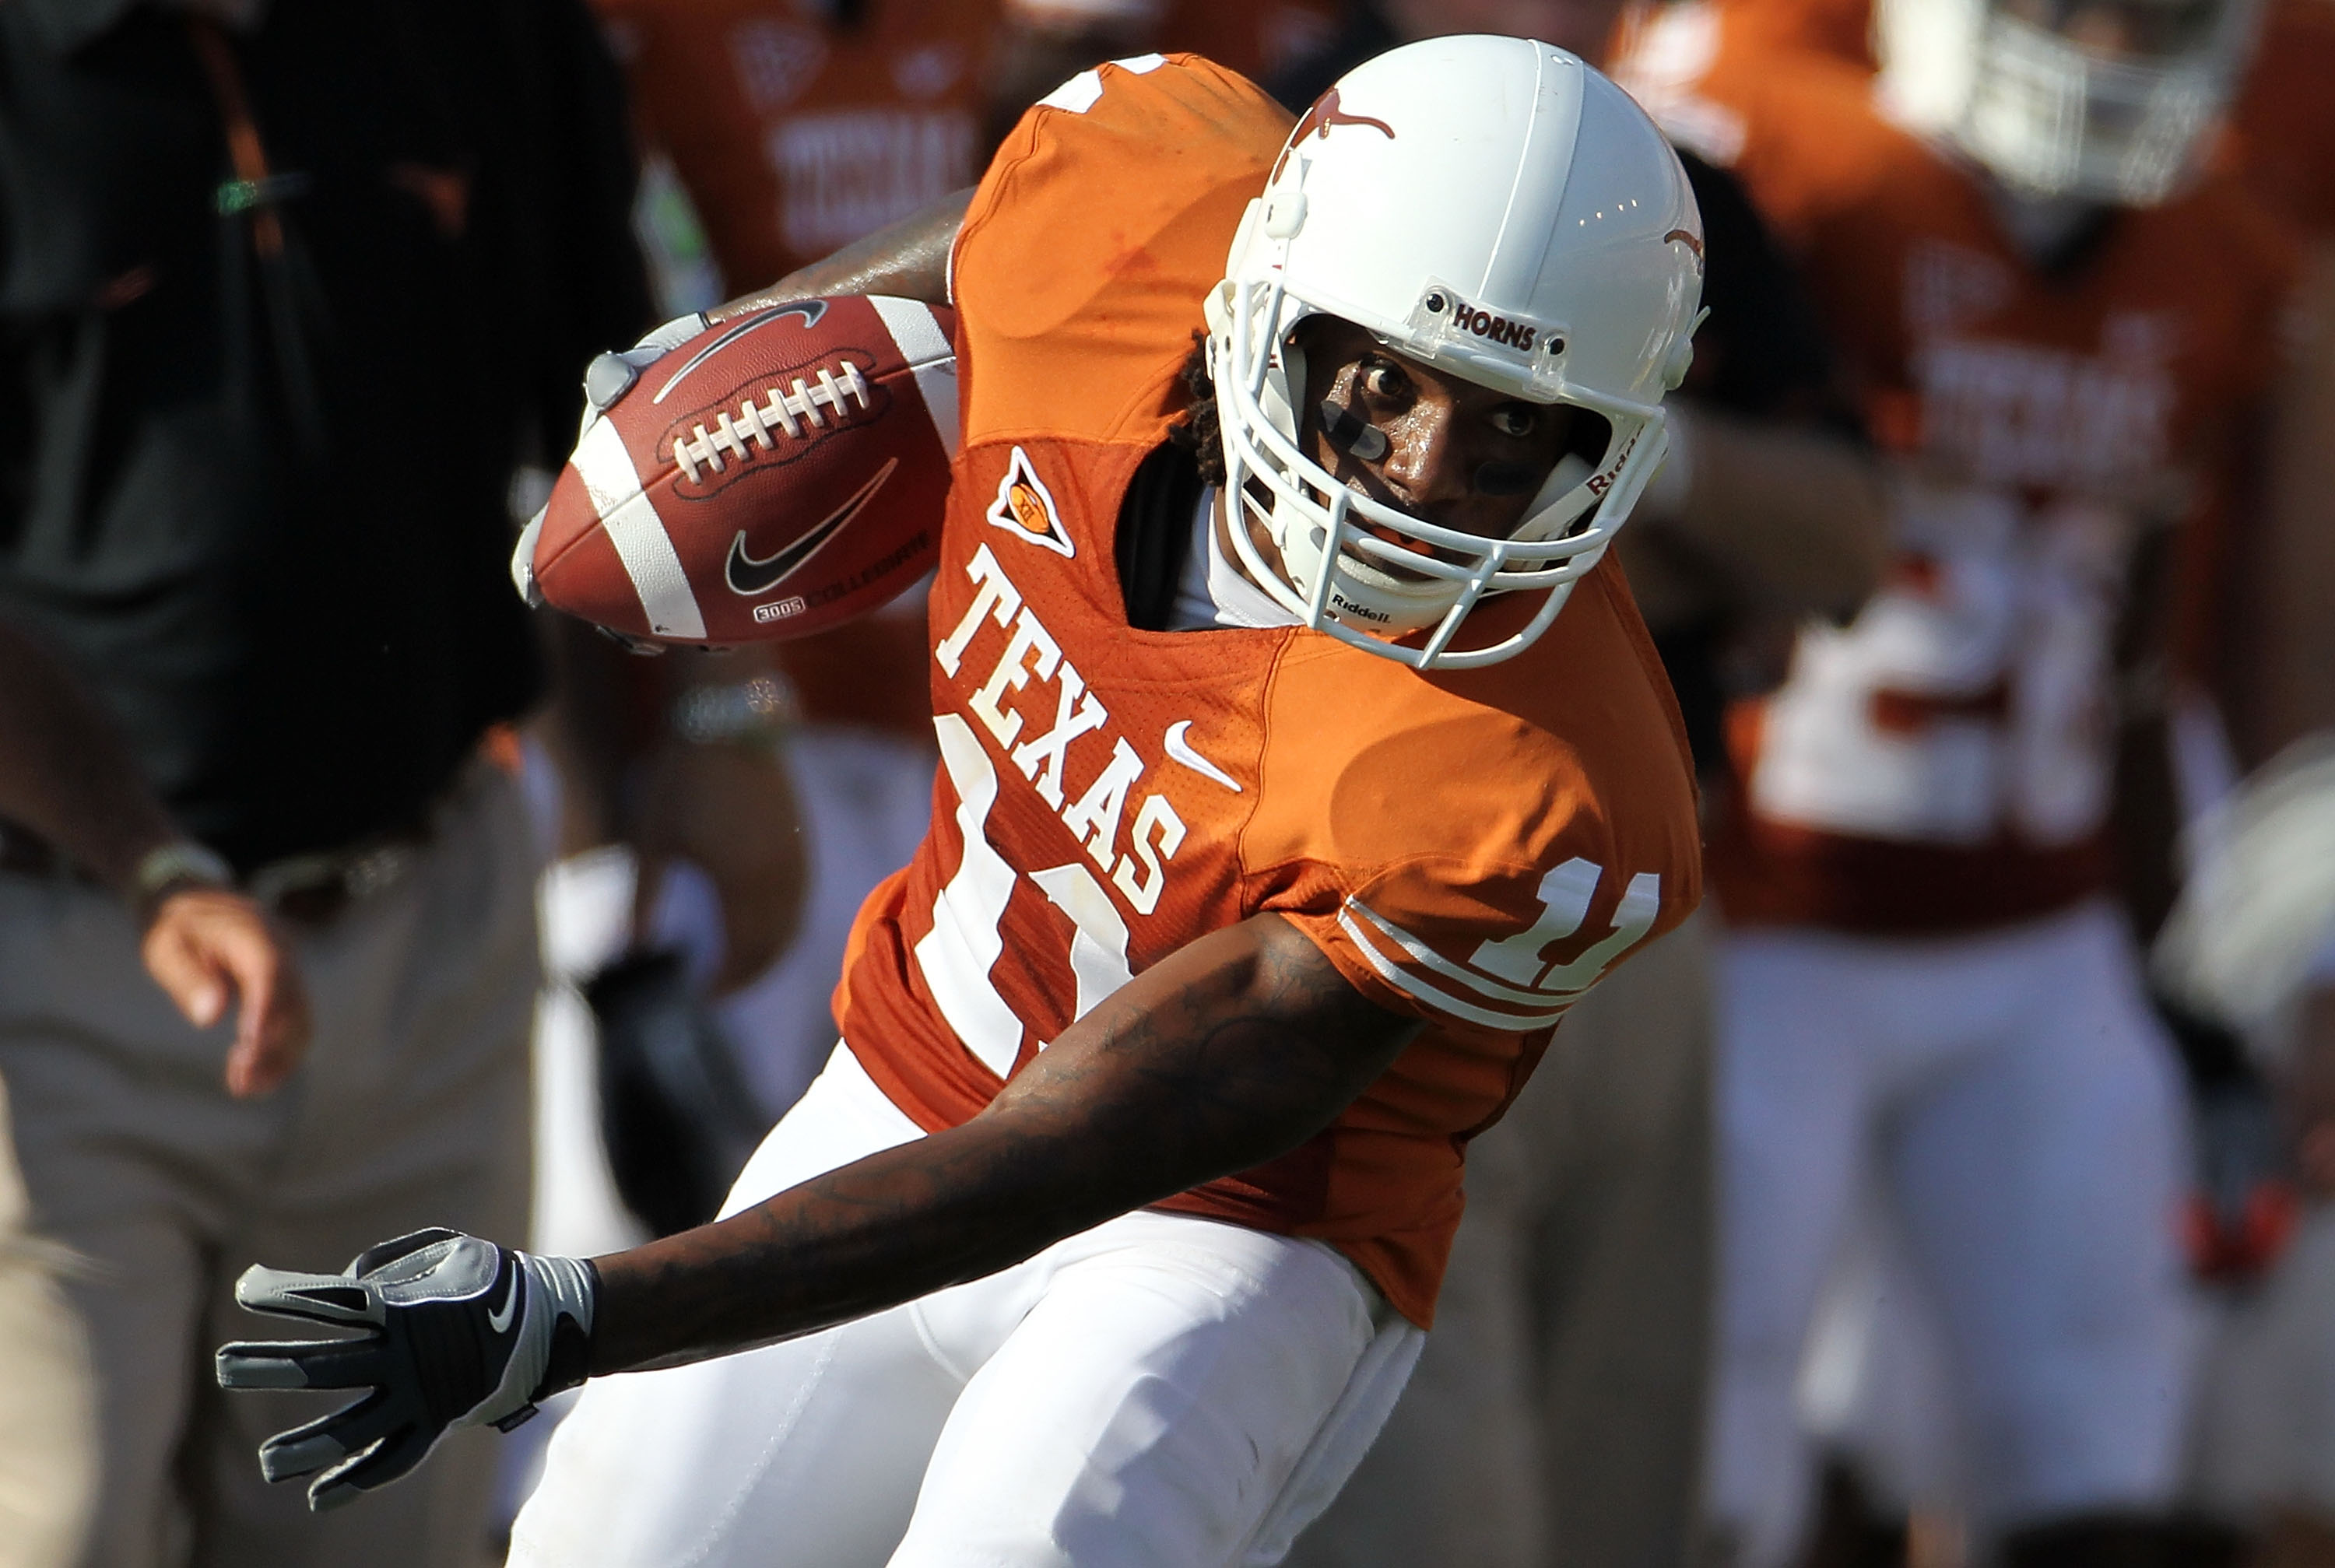 AUSTIN, TX - SEPTEMBER 25:  Wide receiver James Kirkendoll #11 of the Texas Longhorns runs the ball against the UCLA Bruins at Darrell K Royal-Texas Memorial Stadium on September 25, 2010 in Austin, Texas.  (Photo by Ronald Martinez/Getty Images)